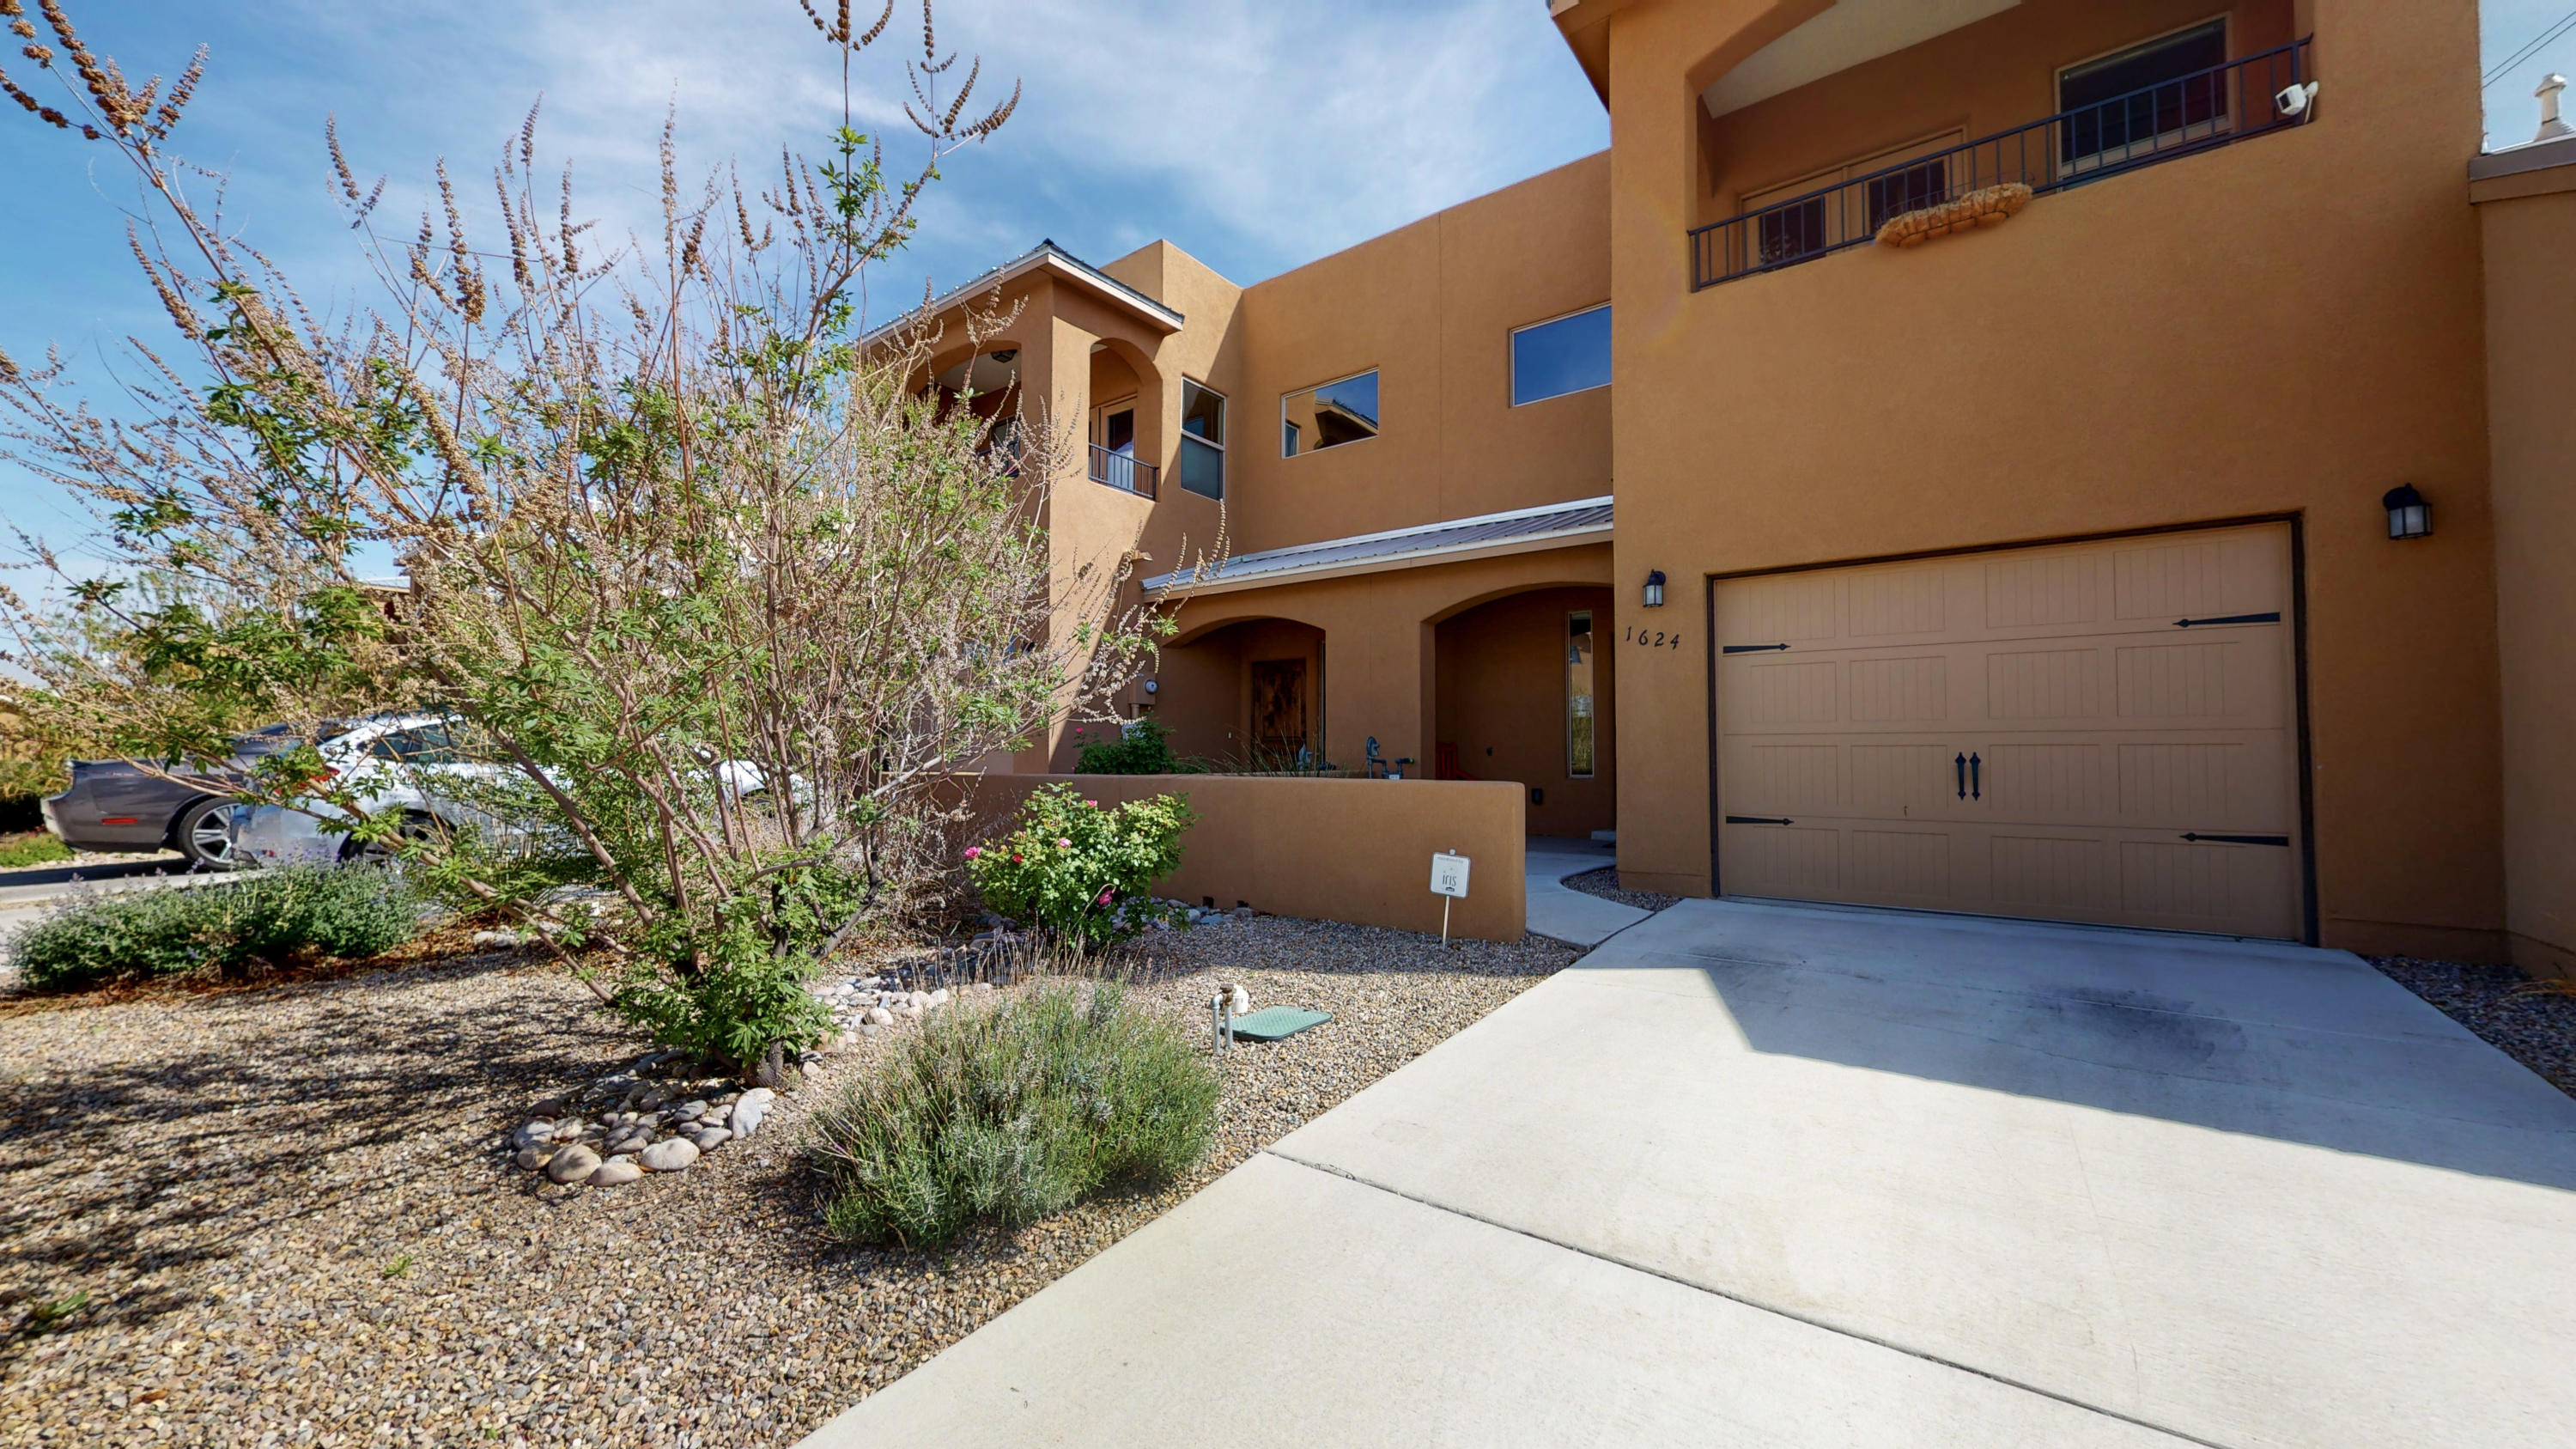 Check out this beauty in the new vibrant Sawmill District.   The double master bedroom townhome boasts an open floor plan with room for entertainment with lots of natural light. The kitchen has upgraded expresso cabinets with beautiful granite countertops and all stainless steel appliances. The island in the kitchen gives extra counter space and is open to the living and dining area.  The back yard is professionally landscaped and designed for easy maintenance.  The master bedrooms (yes 2 master suites) both have their own bathroom and walk in closets.  Each master also has their own private balcony, both with magnificent views! Walking distance to coffee shops, breweries, museums, the brand  new Sawmill Market, Hotel Chaco and Old Town, come check it out today!